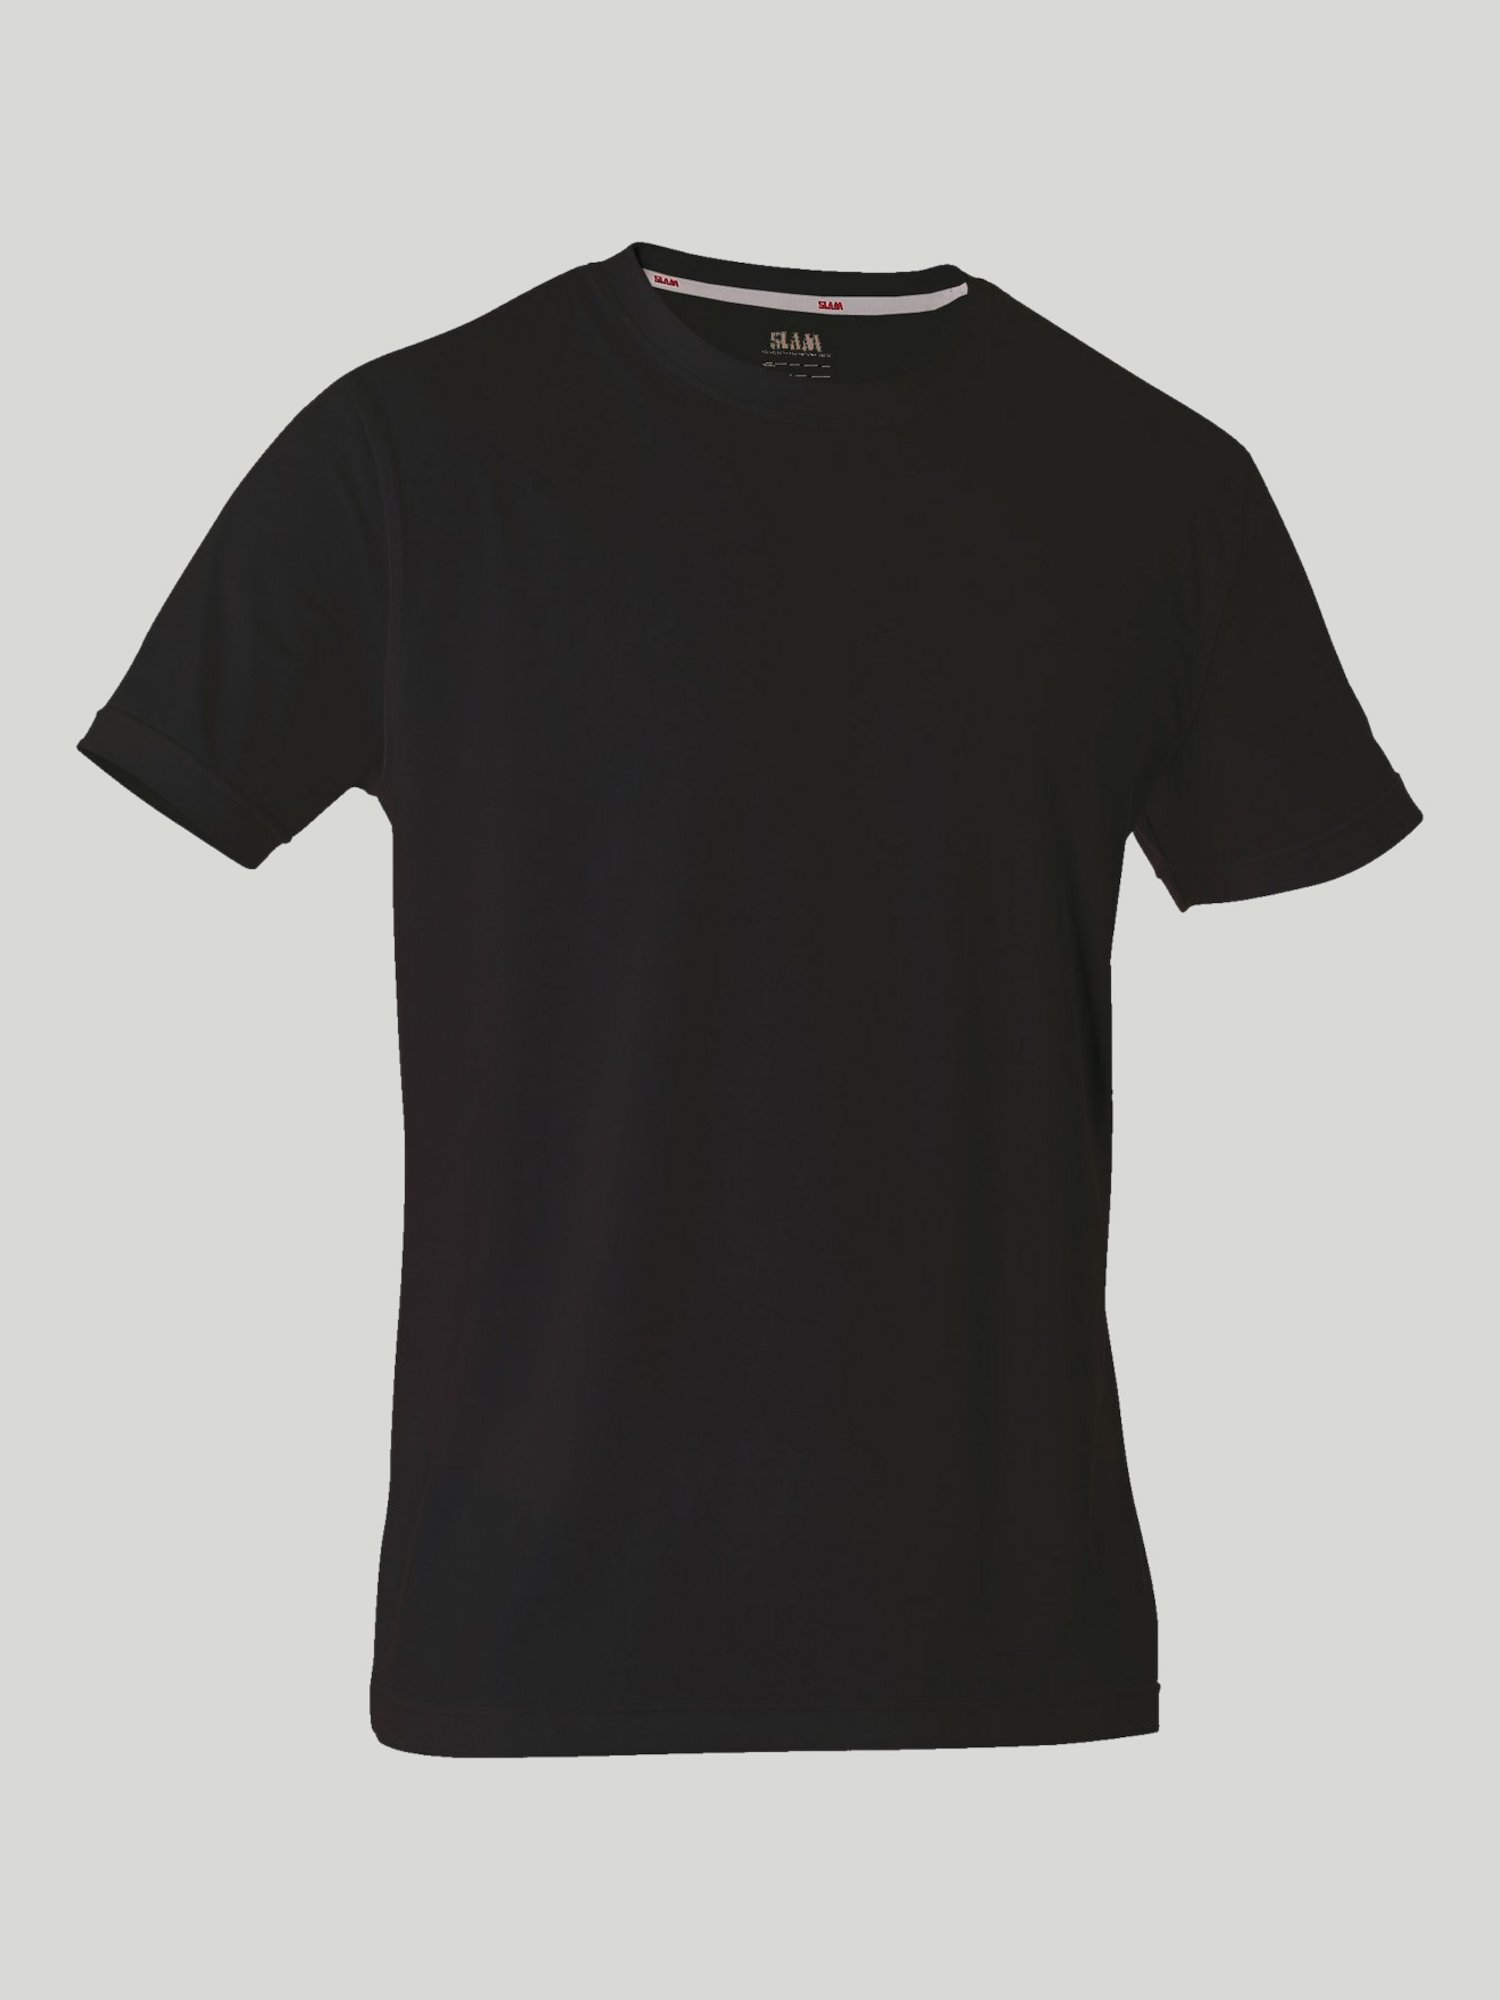 Gladiator t-shirt  - Black